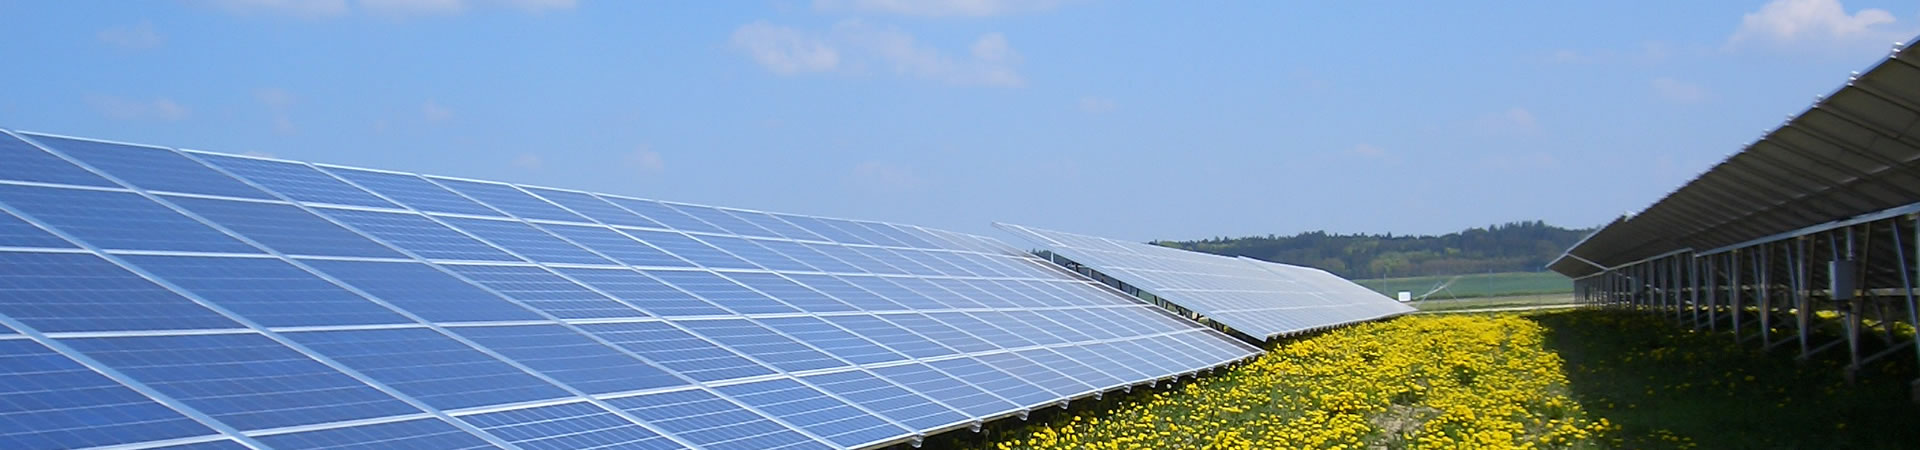 Solar PV player with clear focus on Germany